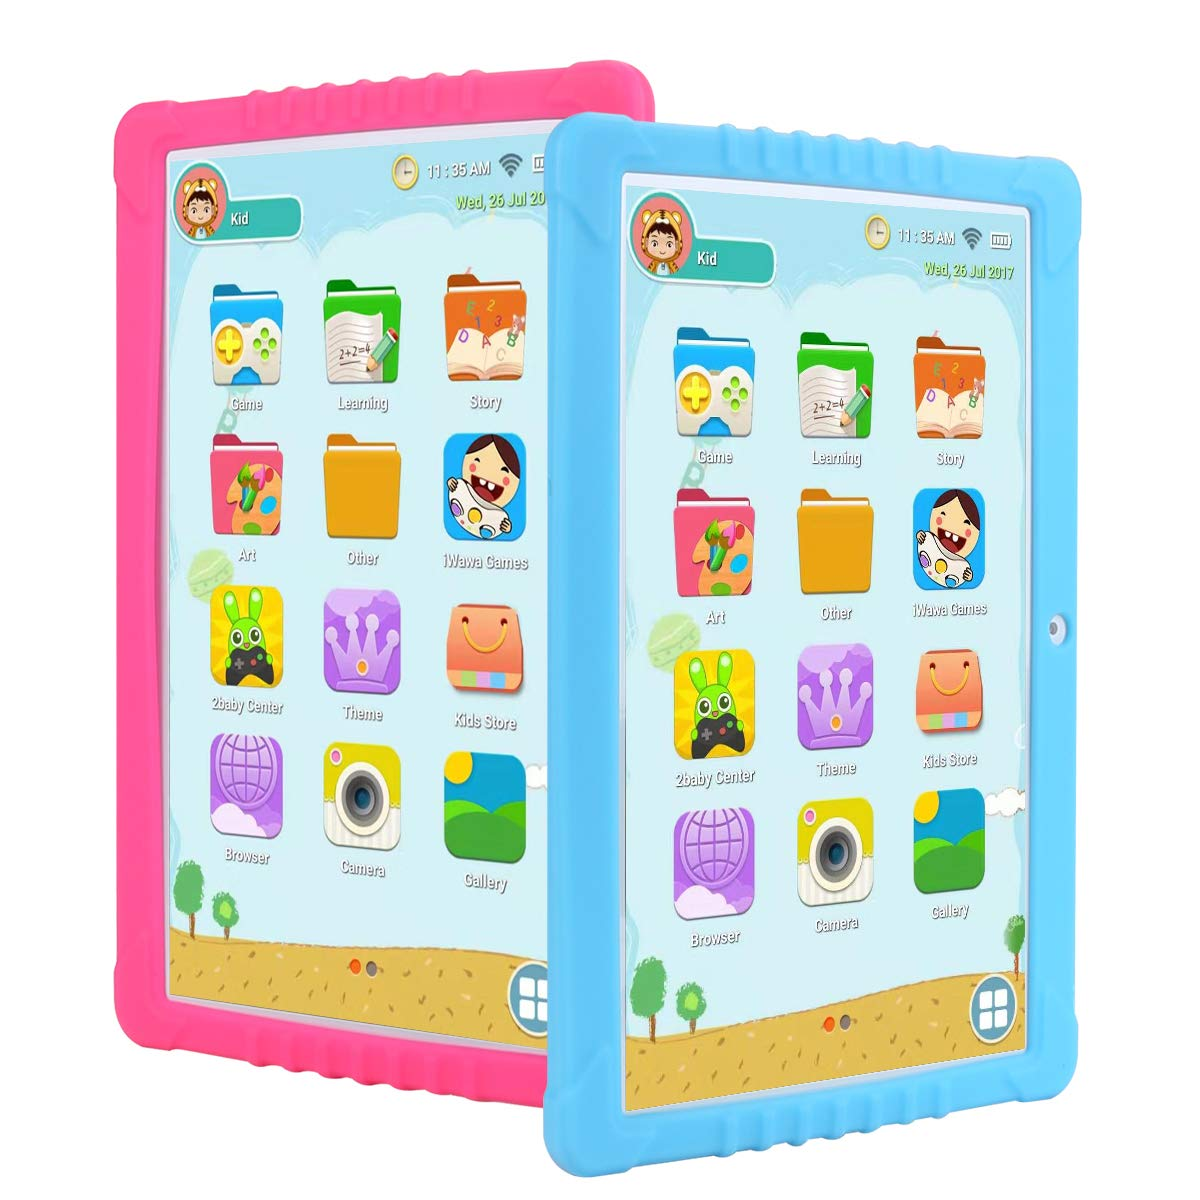 SANNUO Kids Tablet 10.1 inch, GMS-Certified Android 8.1 and Kids -Mode Dual System,Quad Core,16GB ROM,2.0+5.0MP Dual Camera,IPS1280x800 Screen,3G,GPS,Google Play with Learning App for Children. by SANNUO